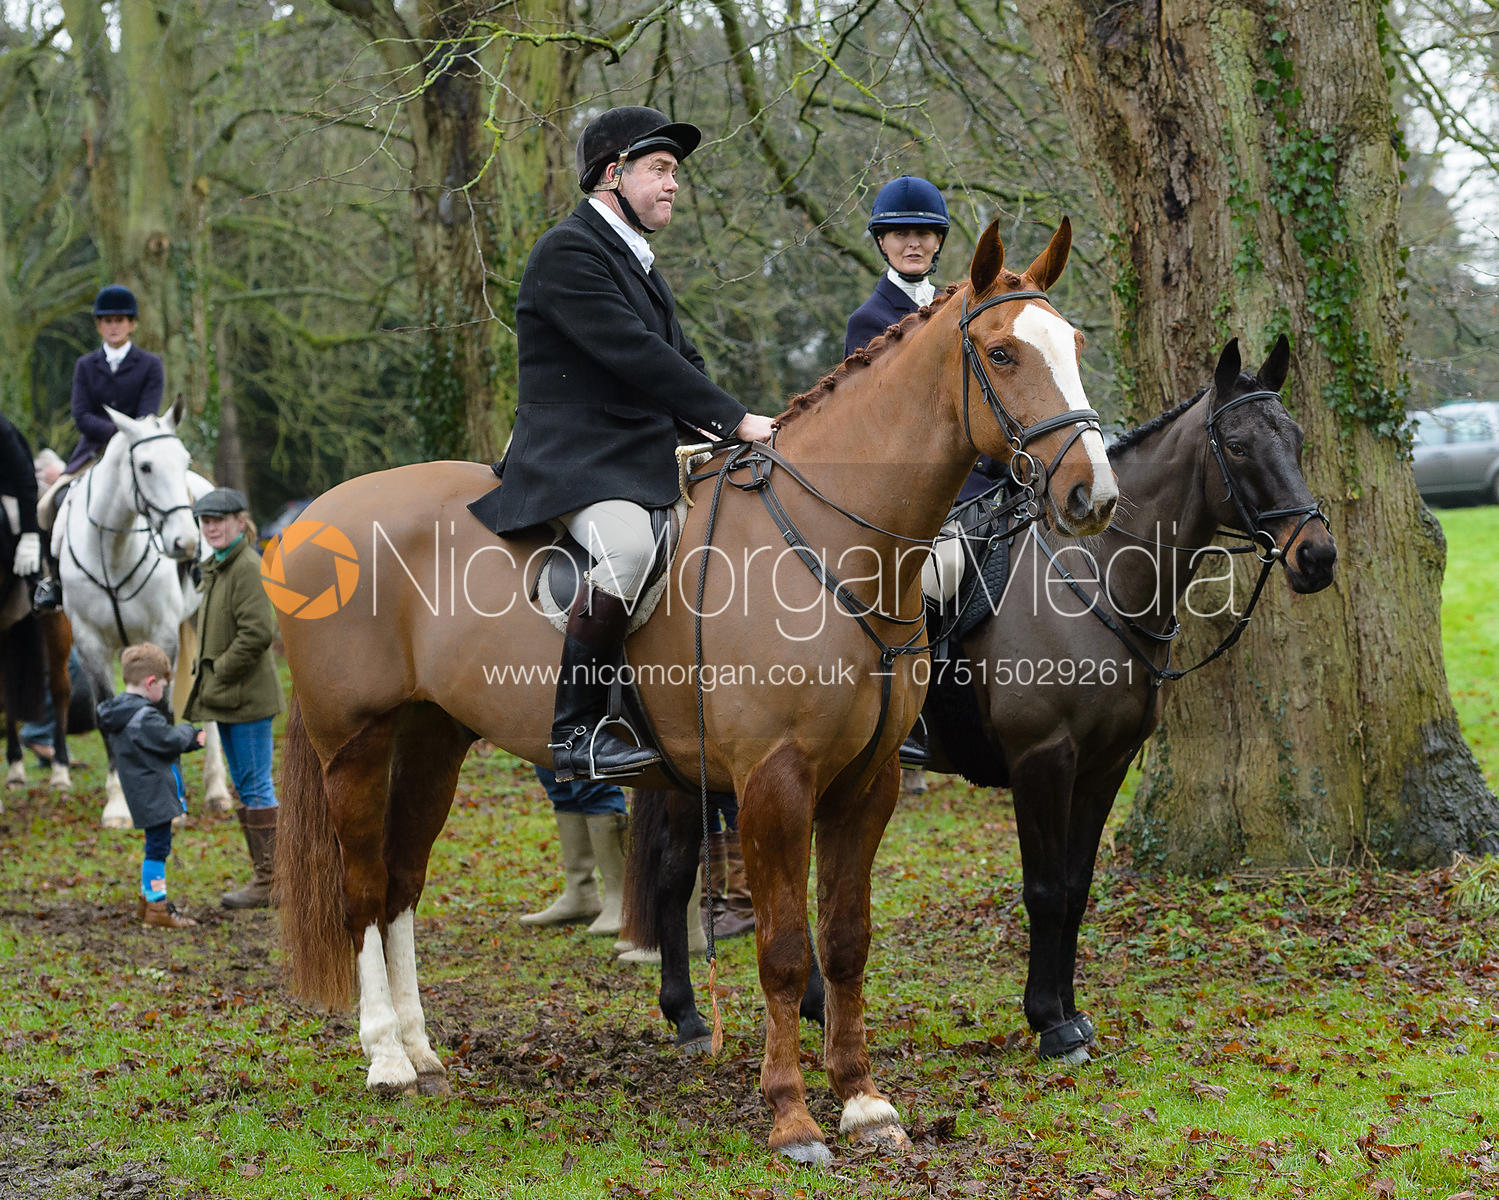 Martin Willcox, Justine Smiley-Jones at the meet at Buckminster